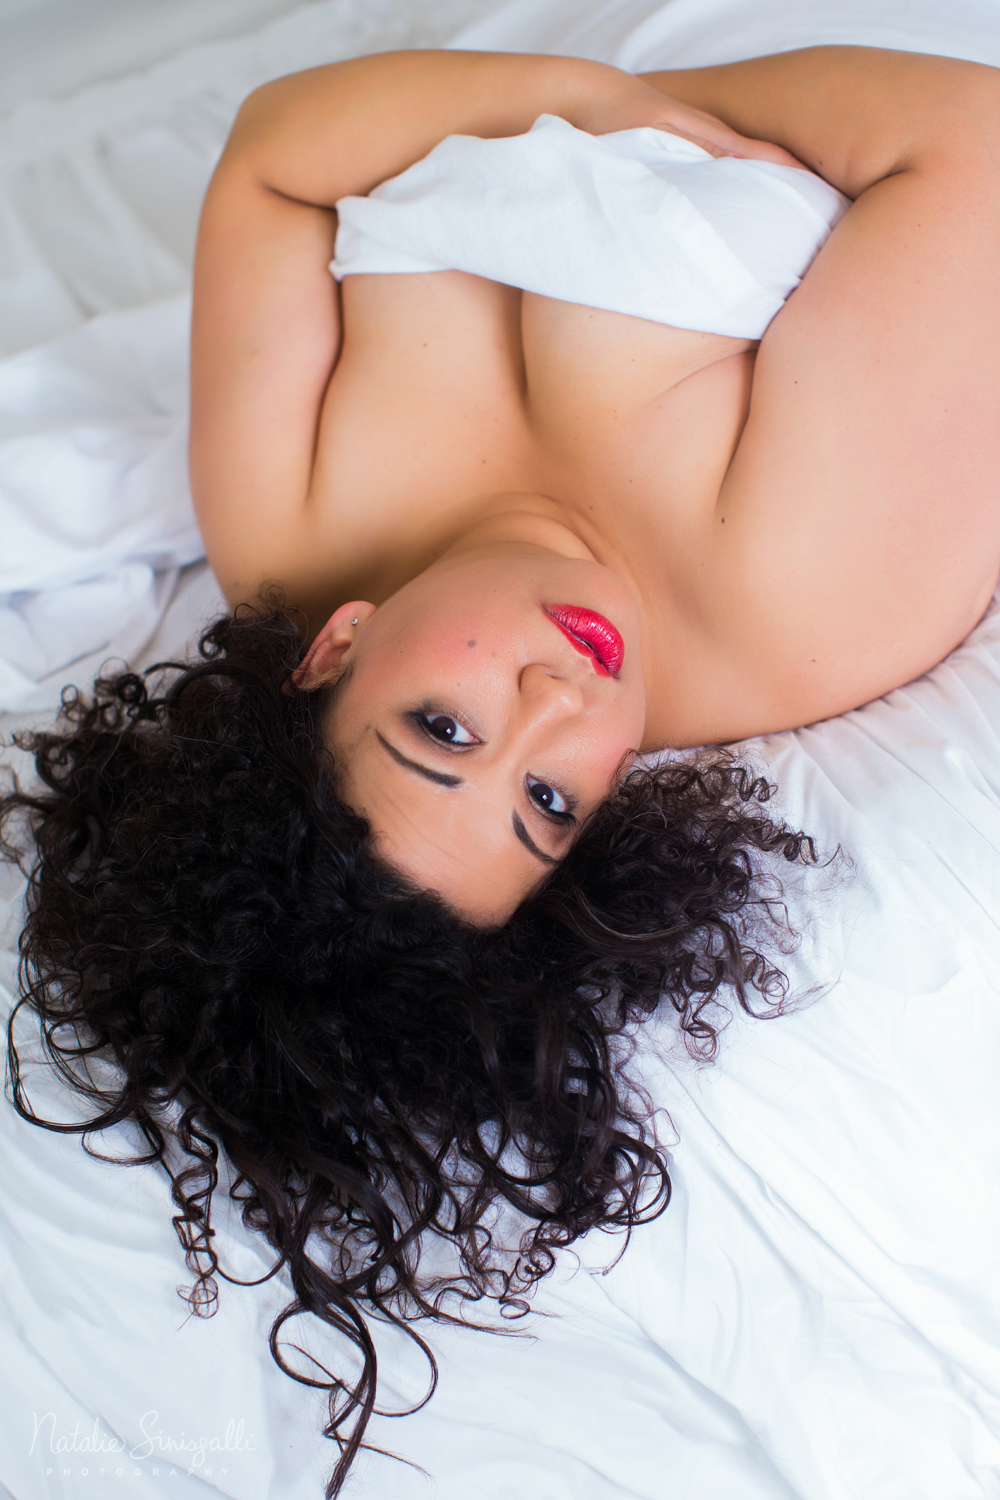 e6b172cd8756 boudoir — Blog — Natalie Sinisgalli Photography